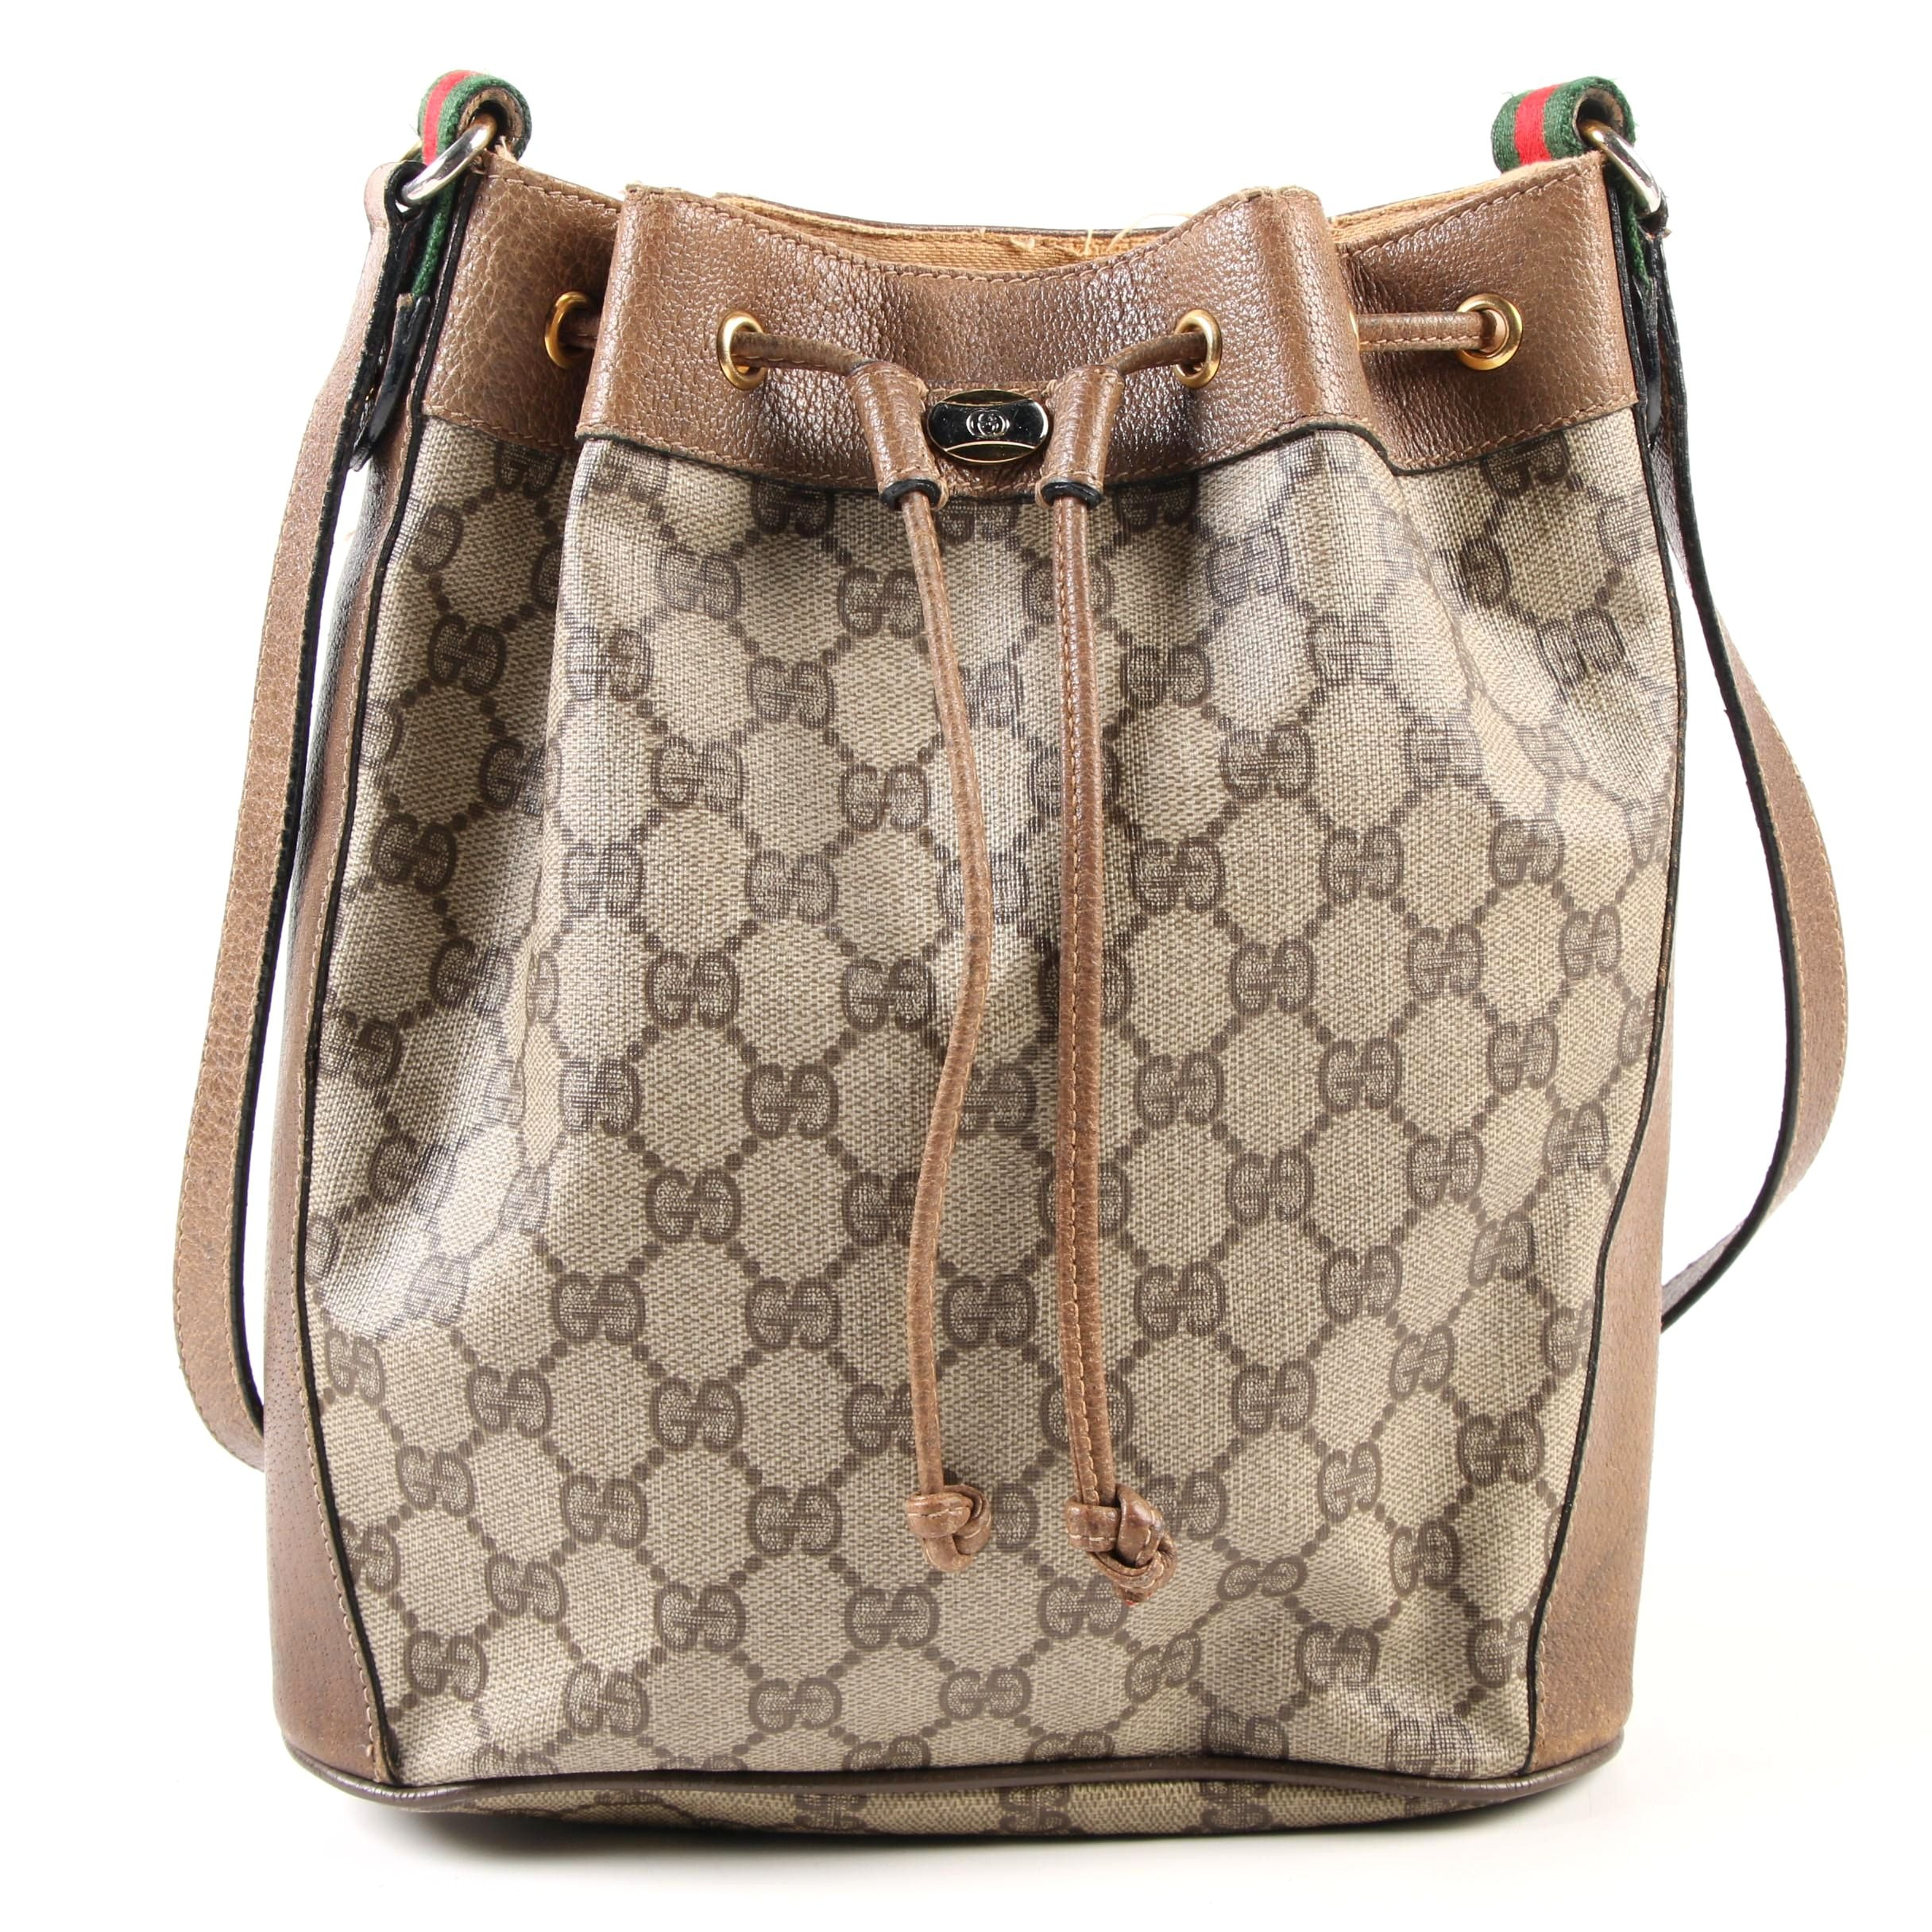 Gucci Accessory Collection Bucket Bag in GG Signature Canvas and Leather